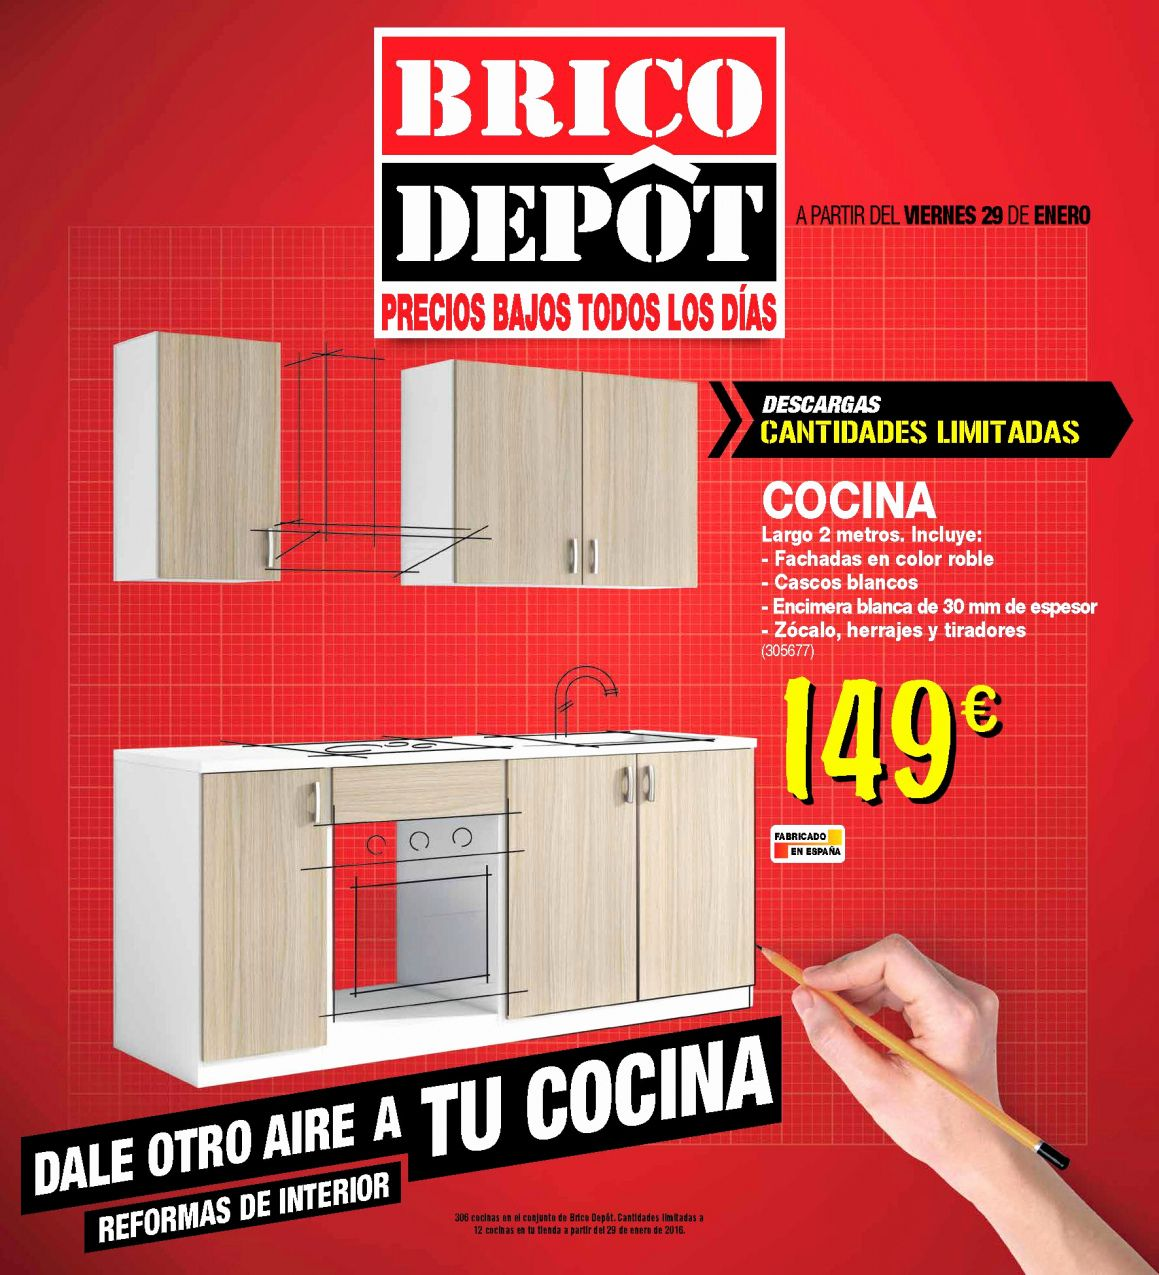 77 Brico Depot Laine De Roche 2017 Check More At Https Www Unionjacktrooper Com 20 Brico Depot Laine De Roche 2018 With Images Ironing Center Decor Home Decor